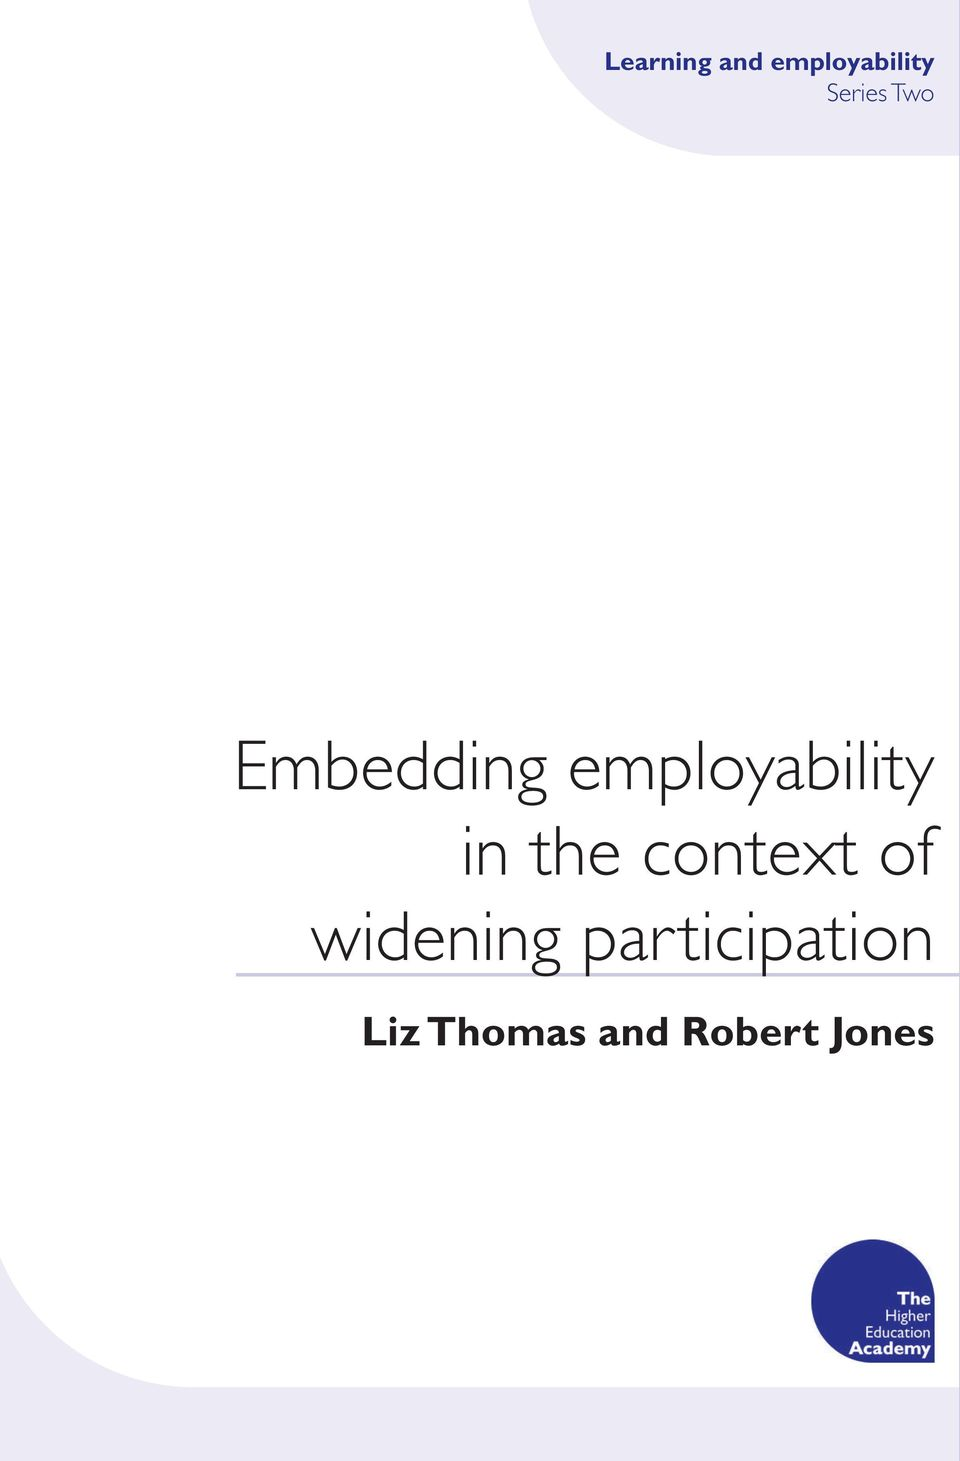 employability in the context of